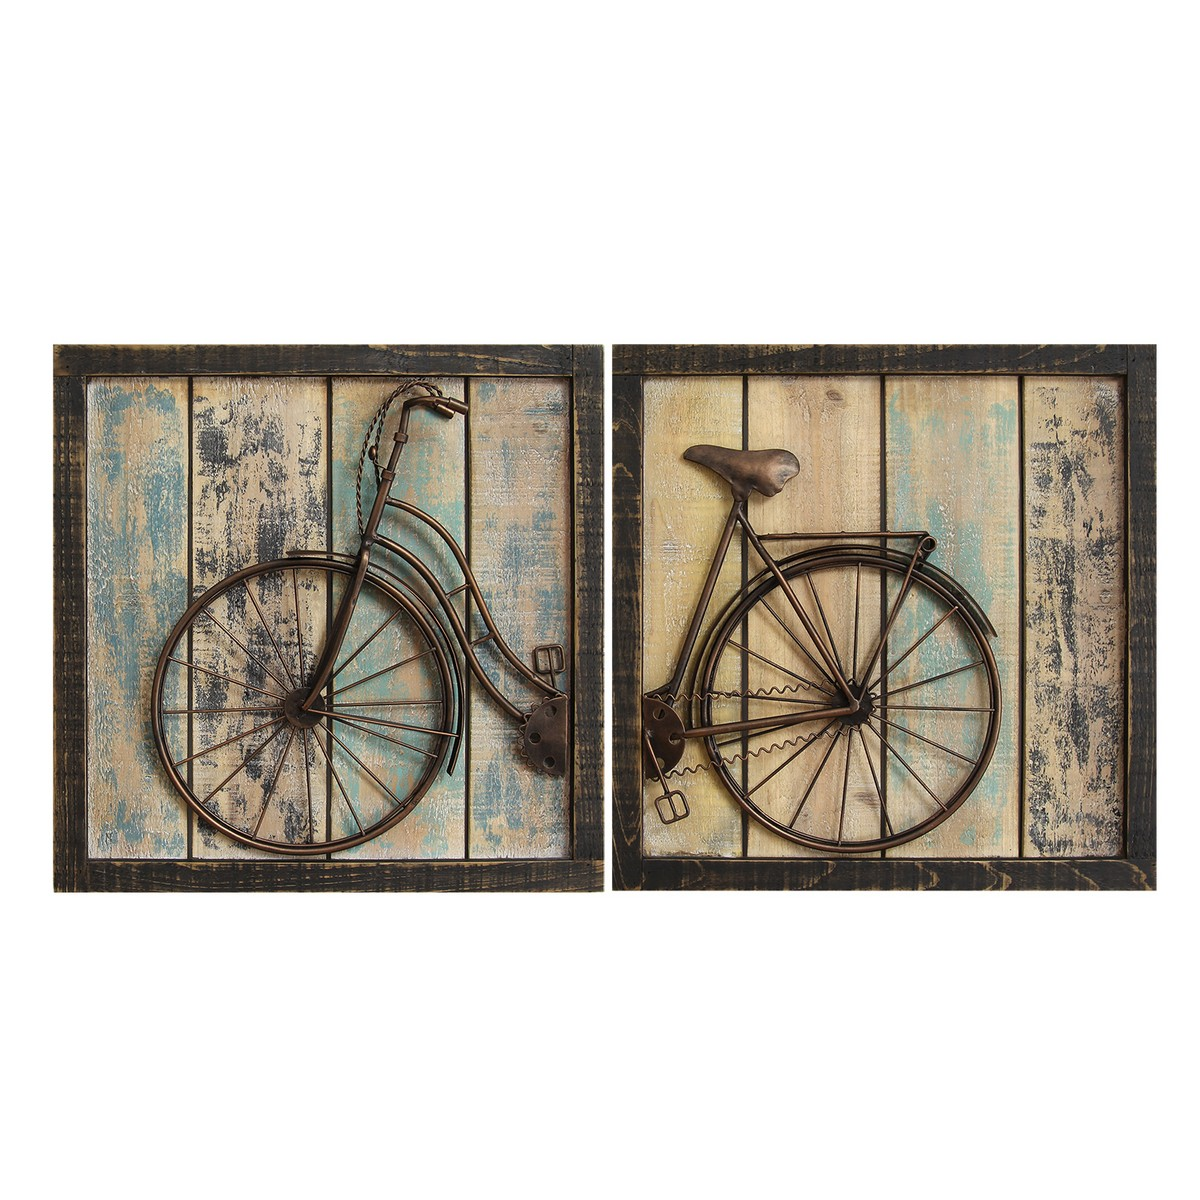 Stratton home decor set of 2 rustic bicycle wall decor for 4 home decor